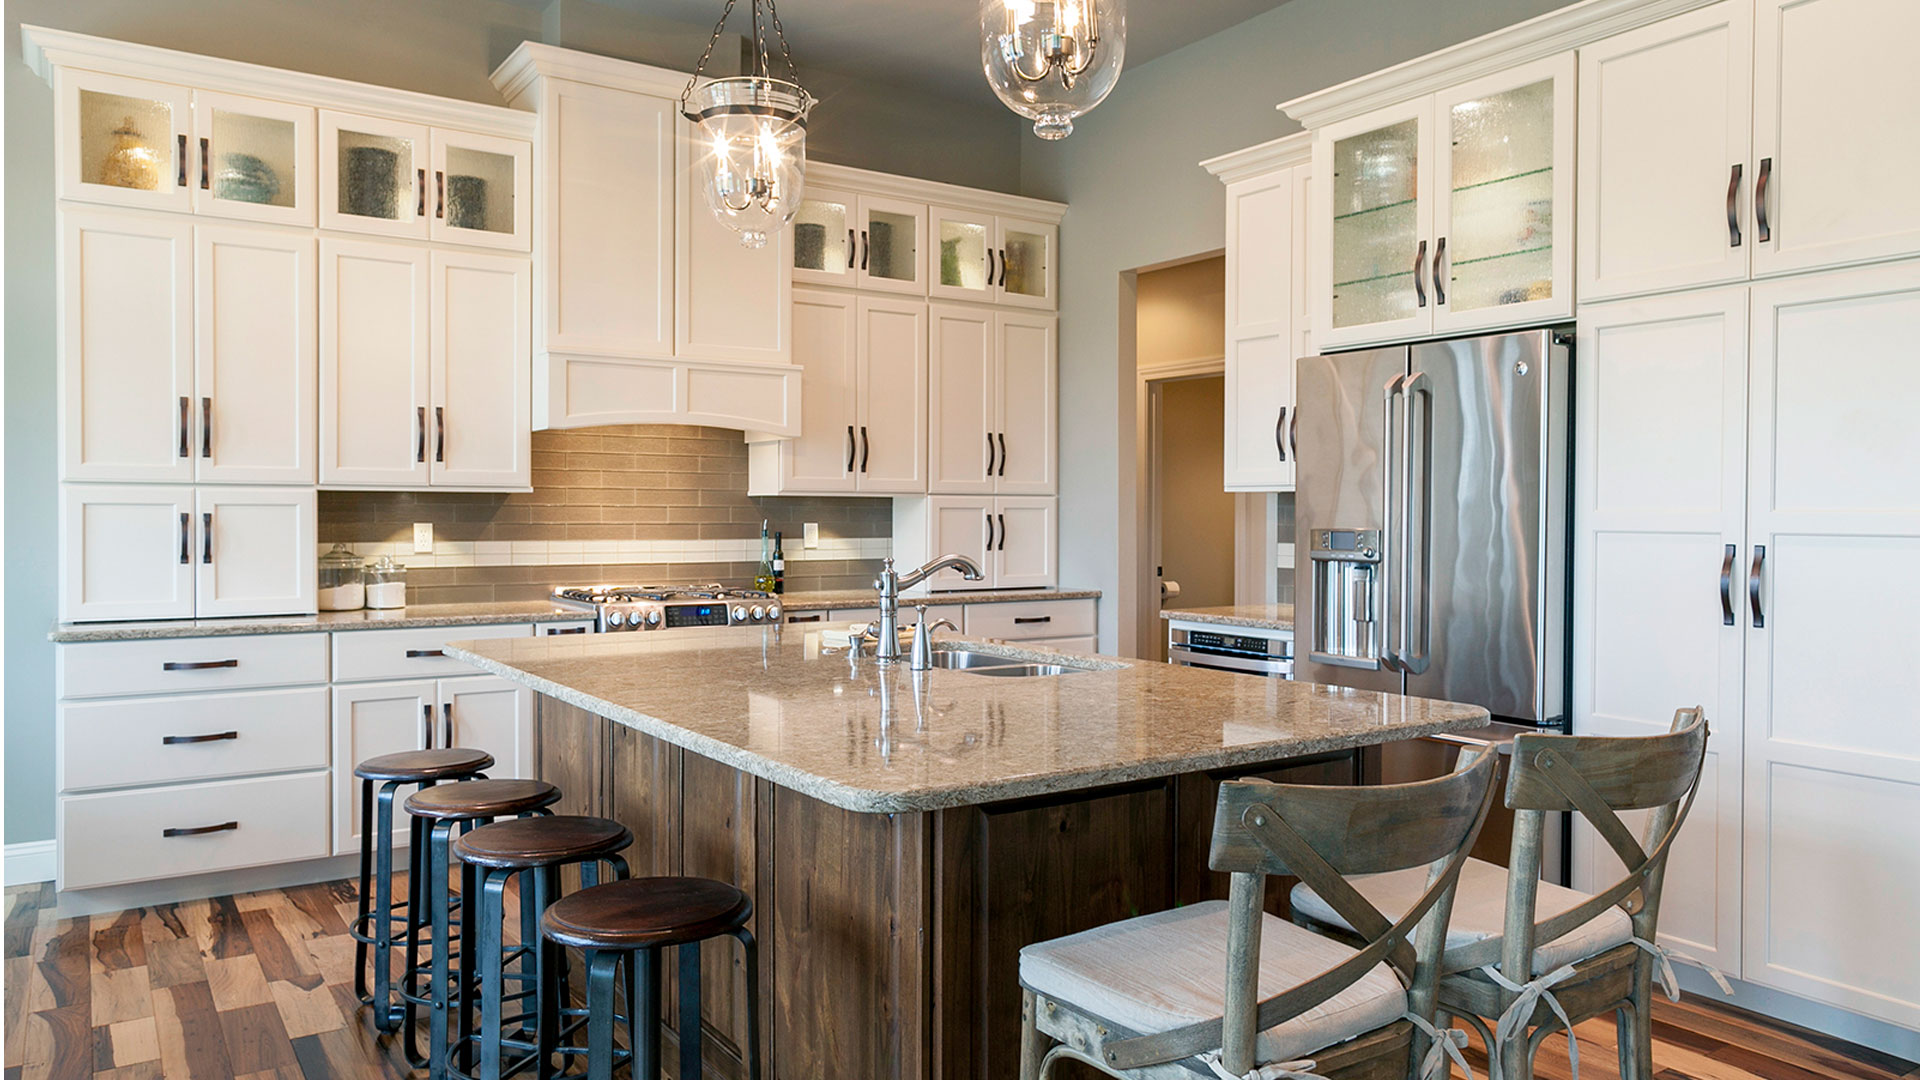 Custom Kitchen Cabinets for your Home Remodeling project in Inverness, FL